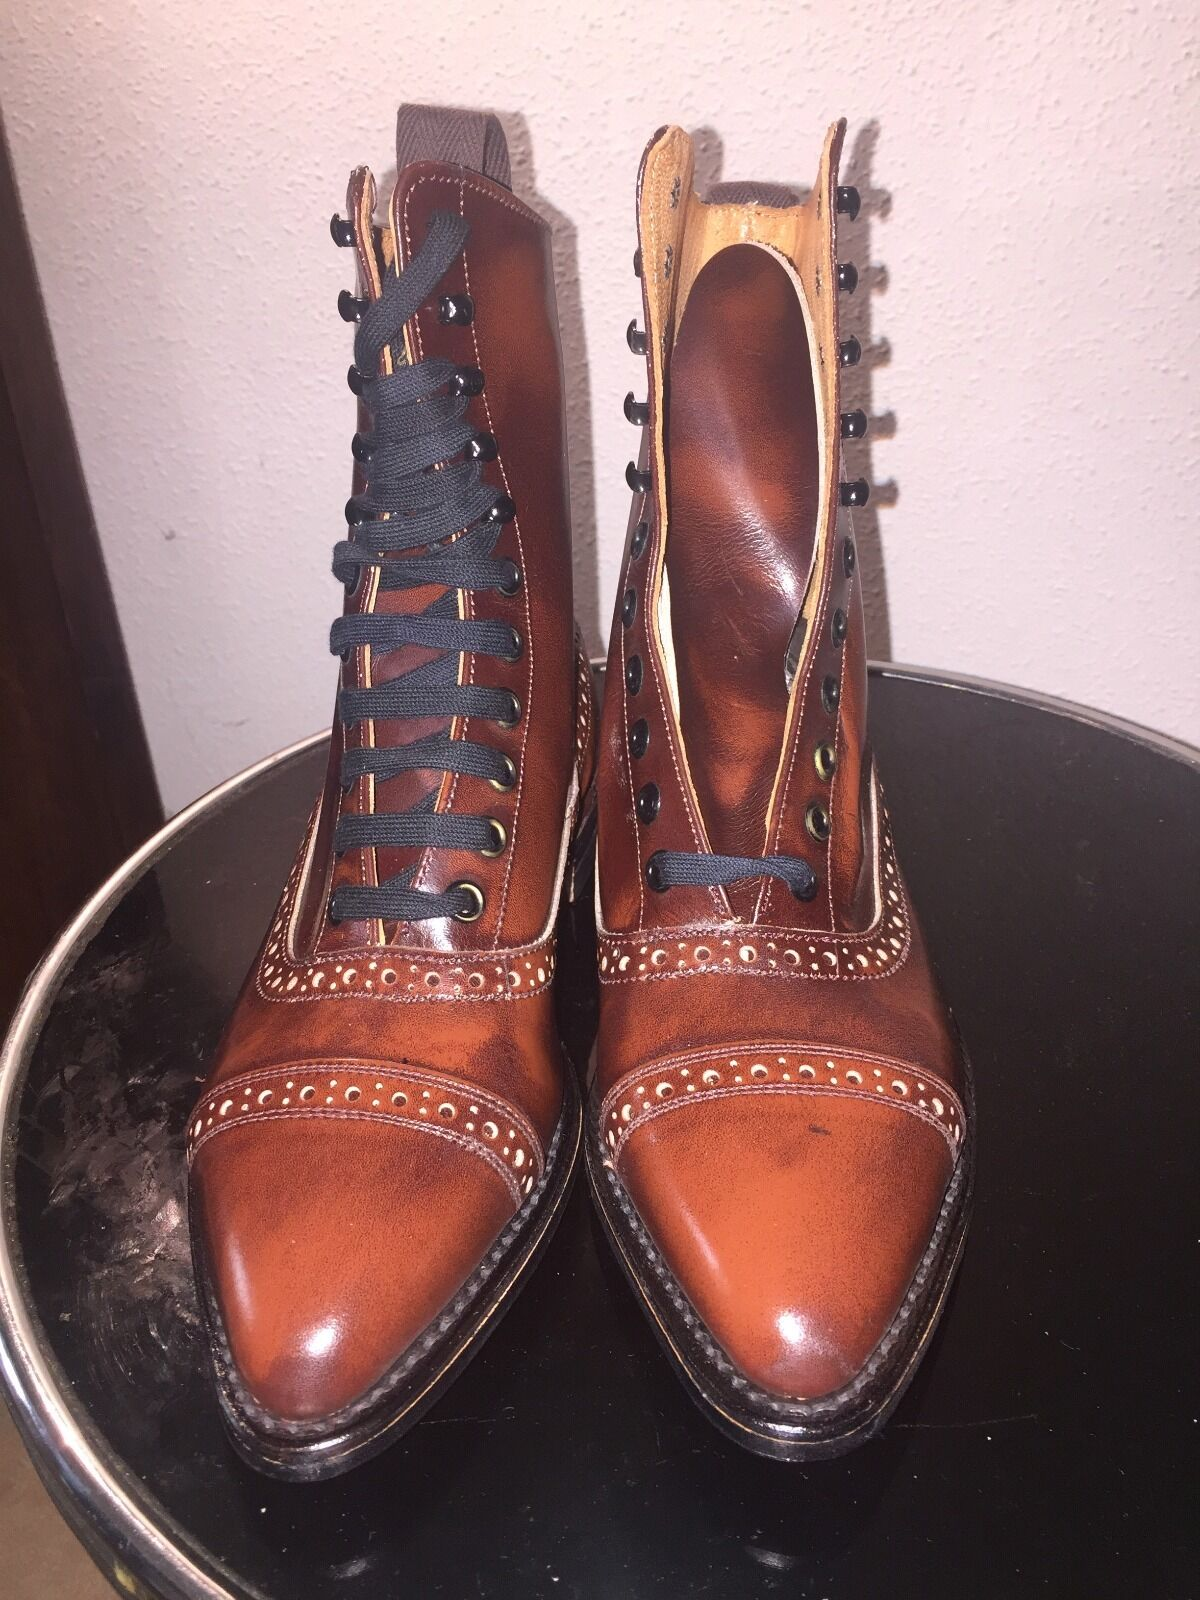 Balmoral boots,all leather,hand made in England,UK4(37),UK5(38)New old stock!